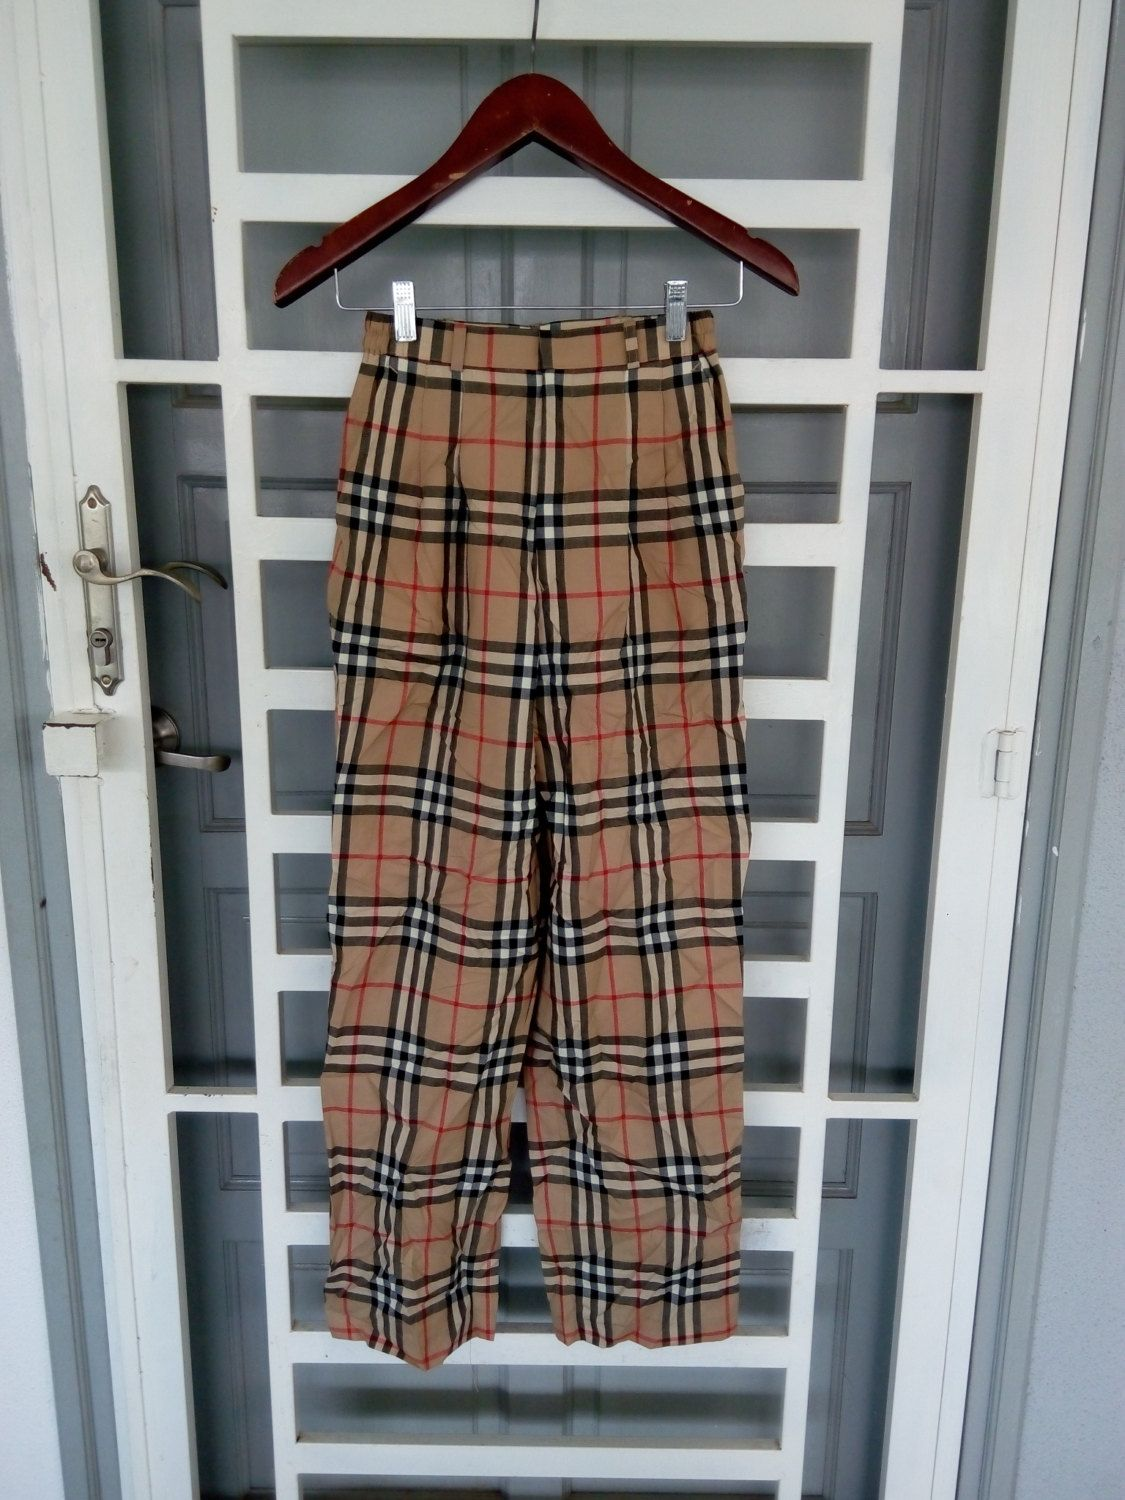 4b0a84c872a086 Vintage burberrys nova checked plaid pants for women by iwalyzaz on Etsy